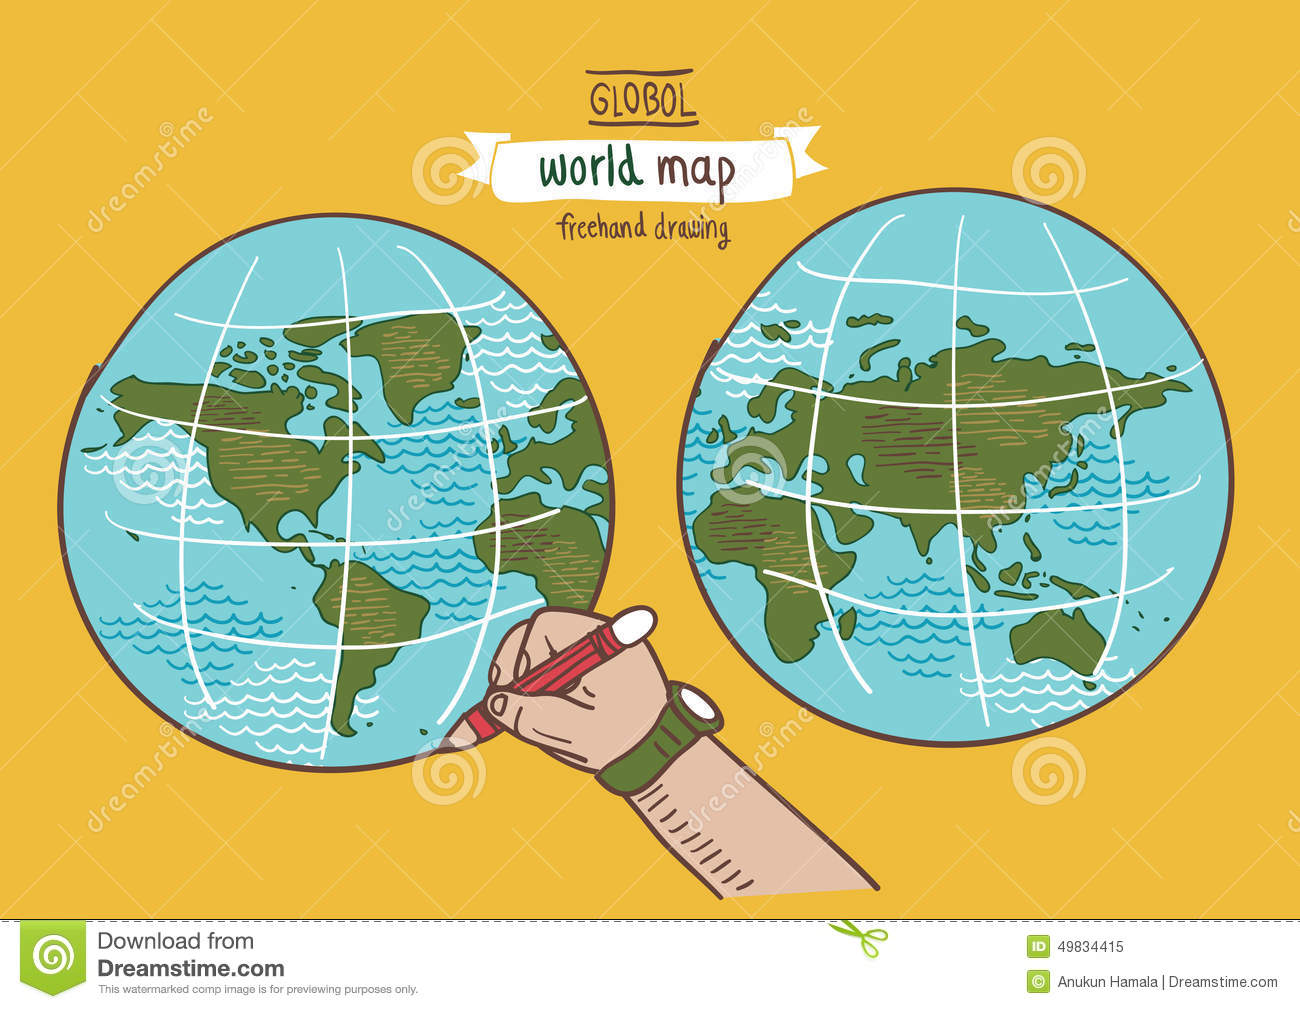 Global world map sketch vector stock vector illustration of global world map sketch vector royalty free vector download gumiabroncs Images